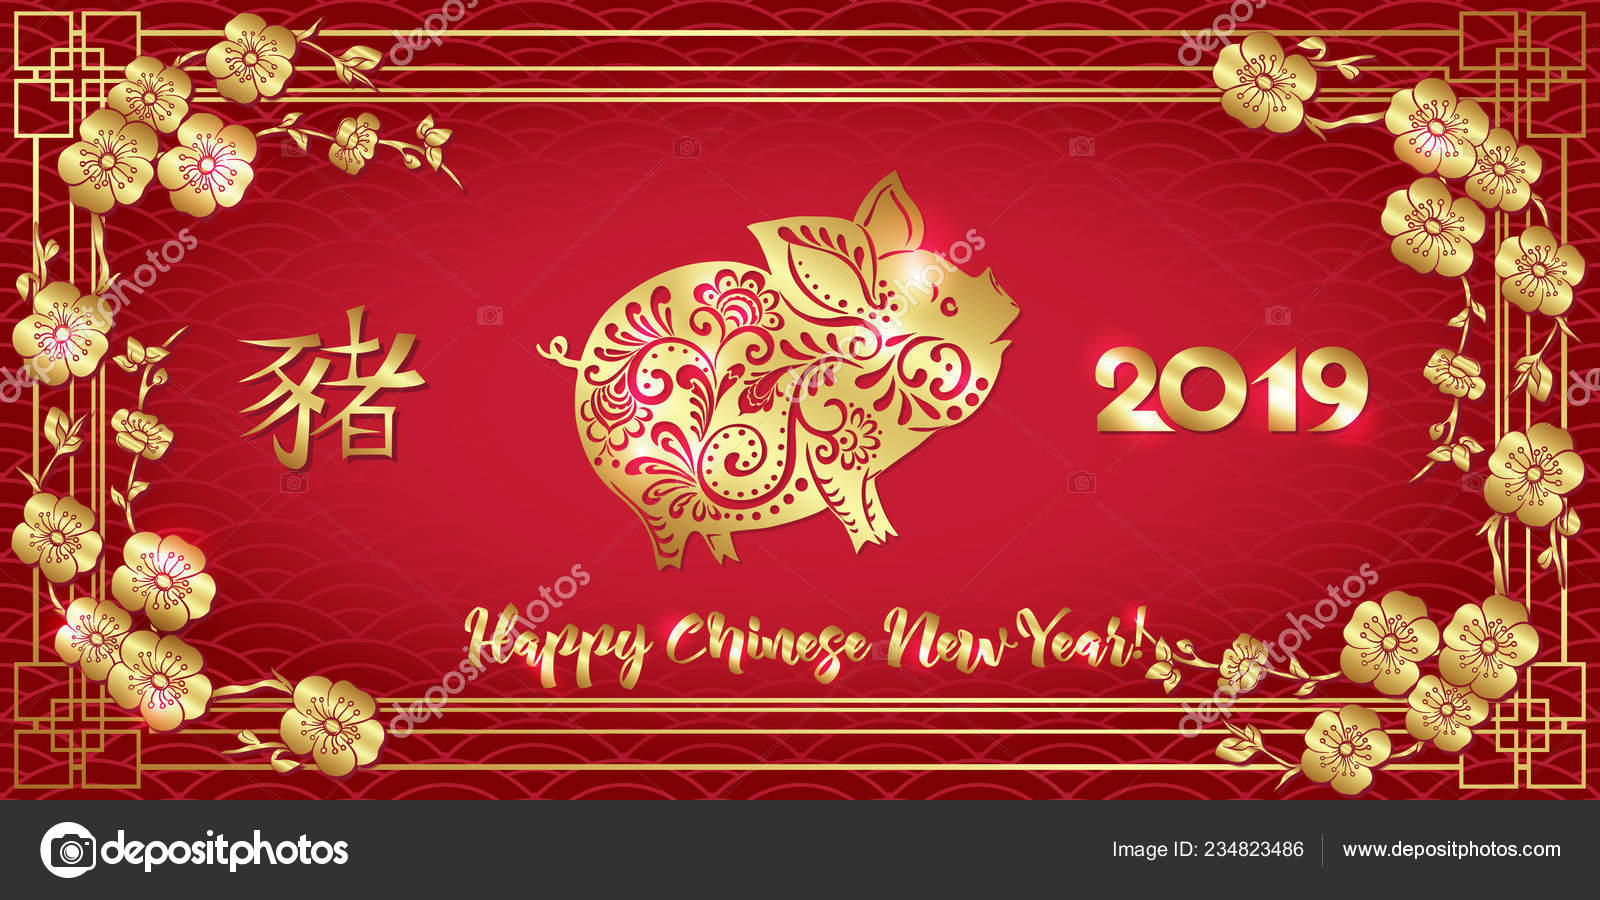 2019 Chinese New Year Year Pig Template Greeting Card